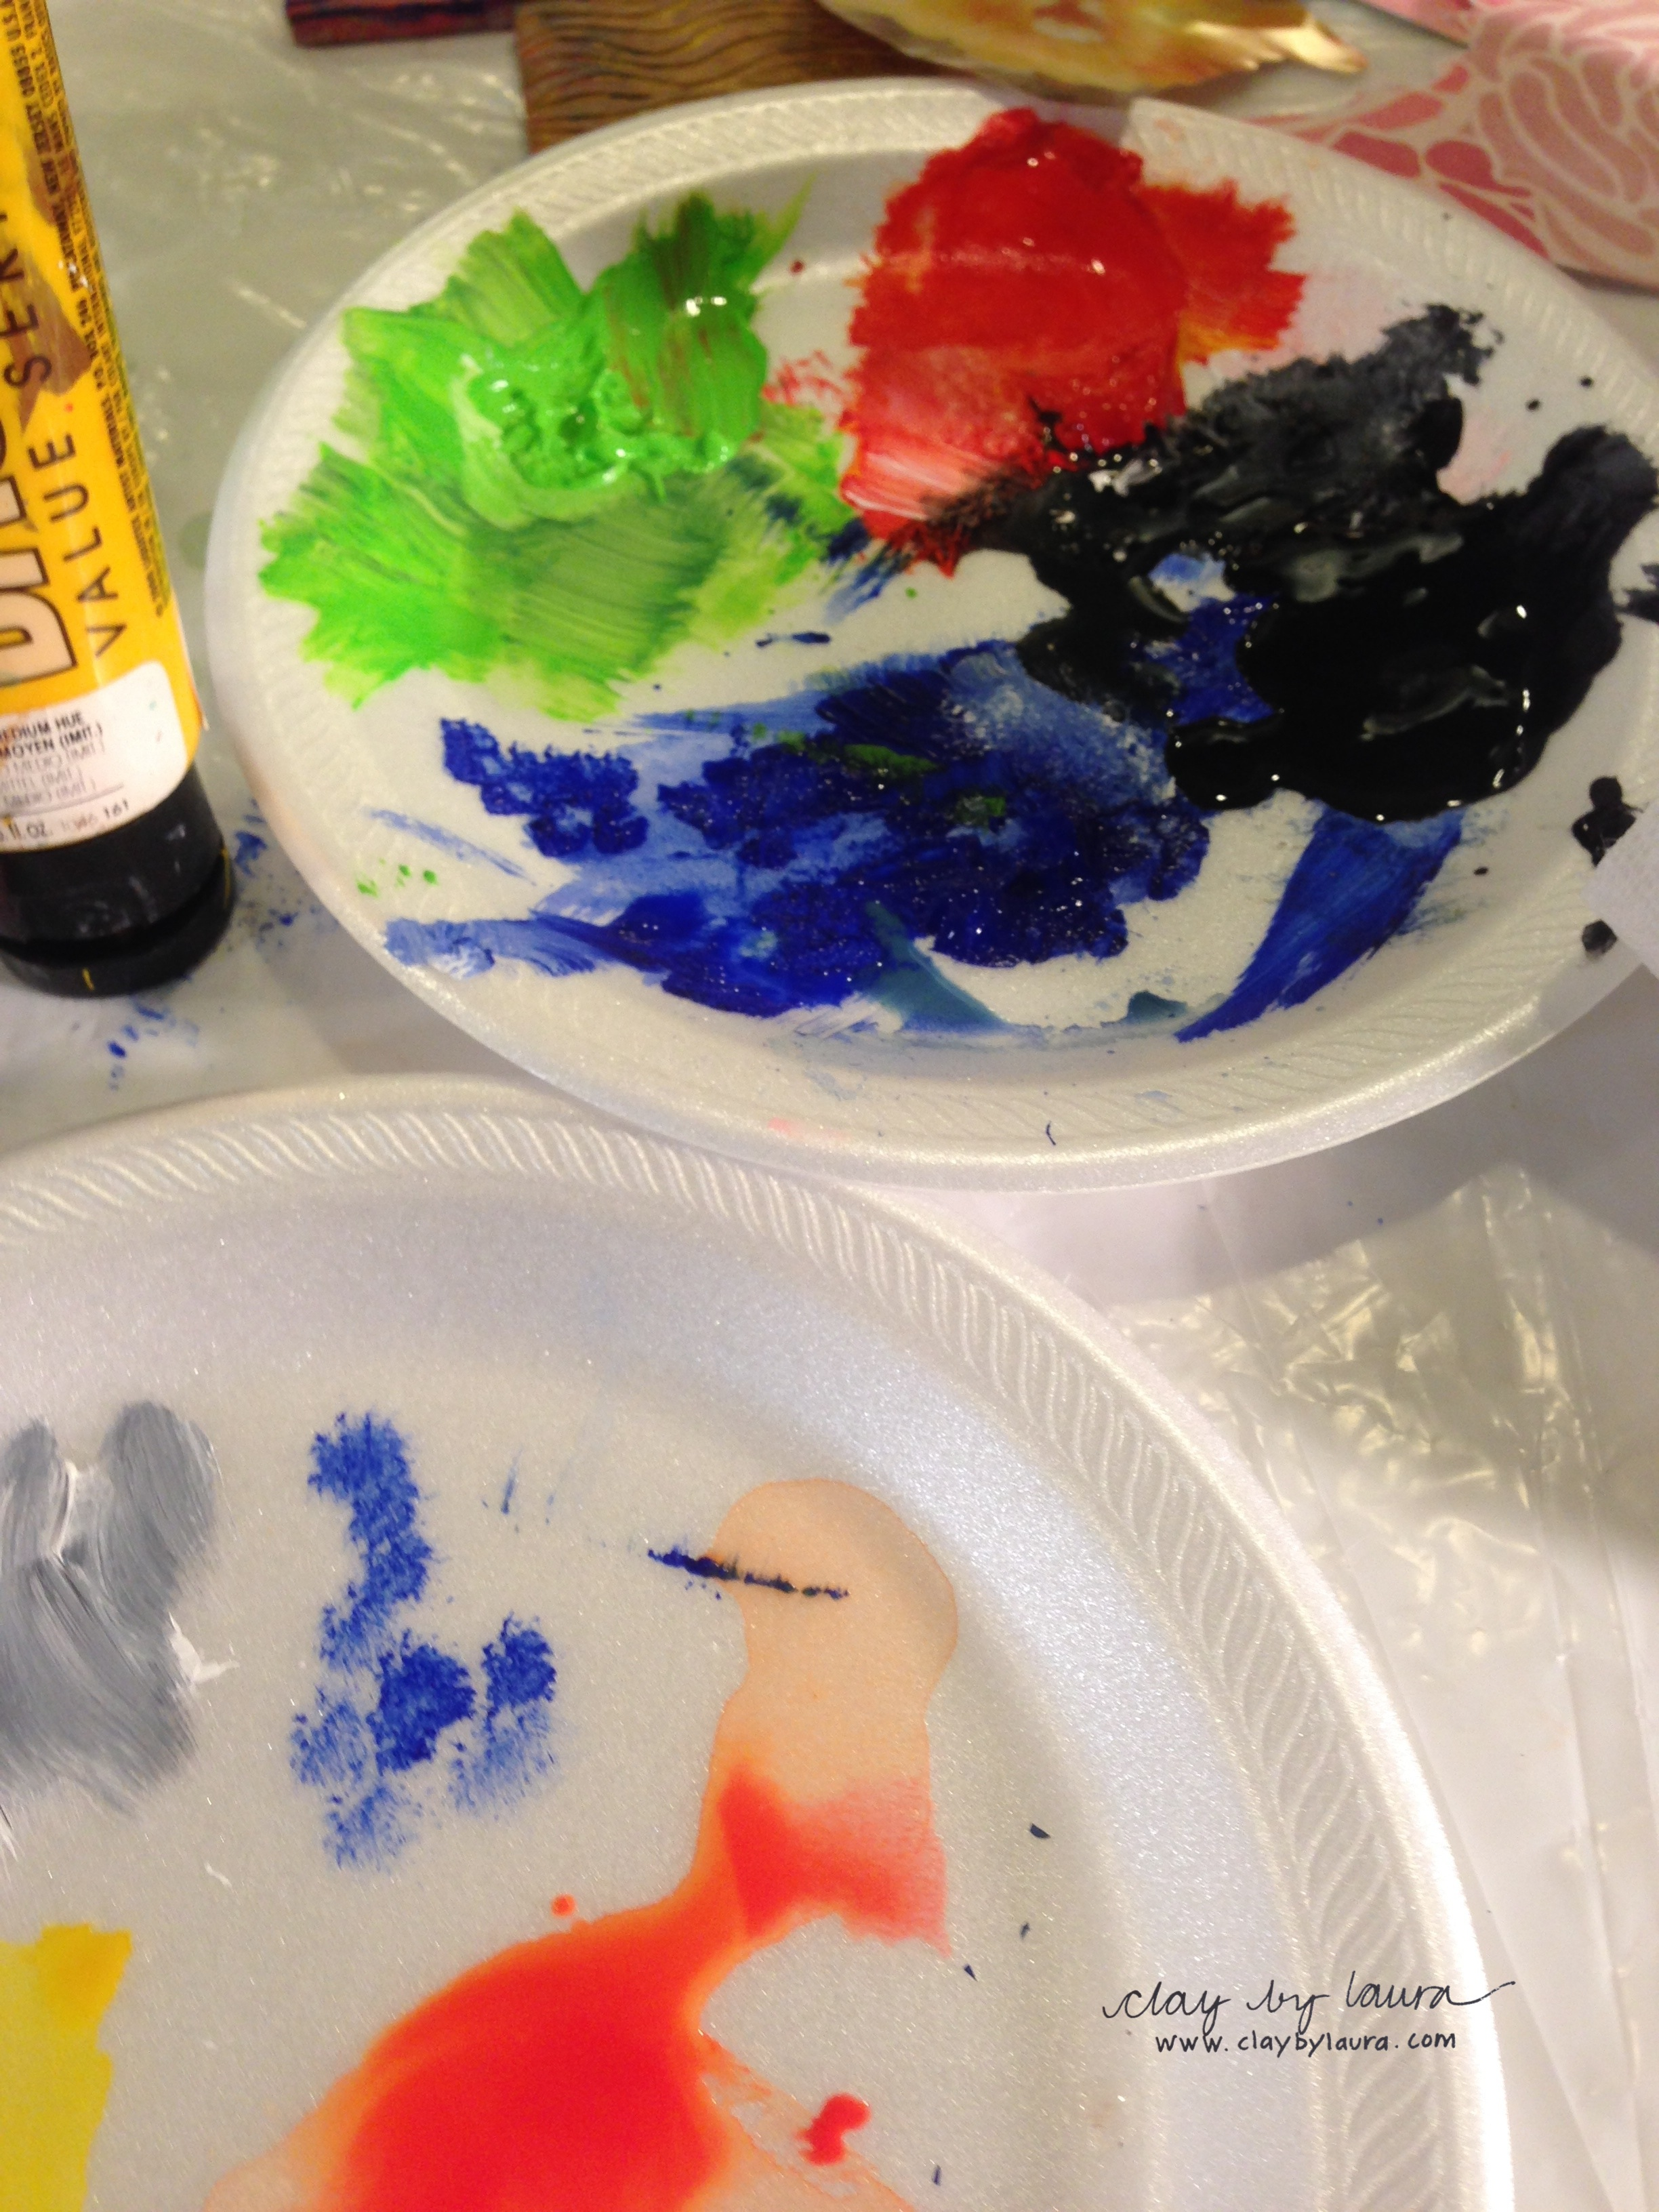 We used acrylic paints in varying degrees of transparency.